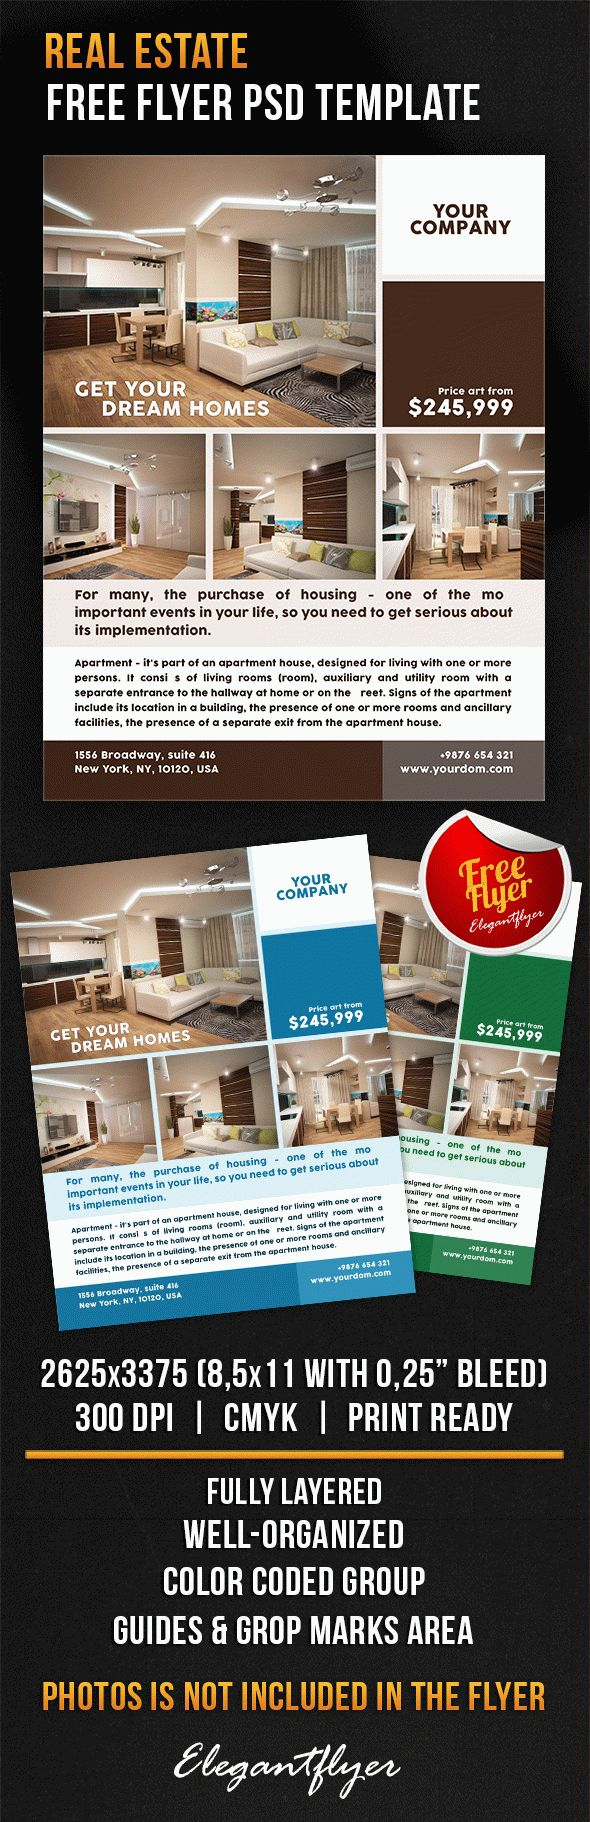 real estate flyer psd template by elegantflyer real estate flyer psd template